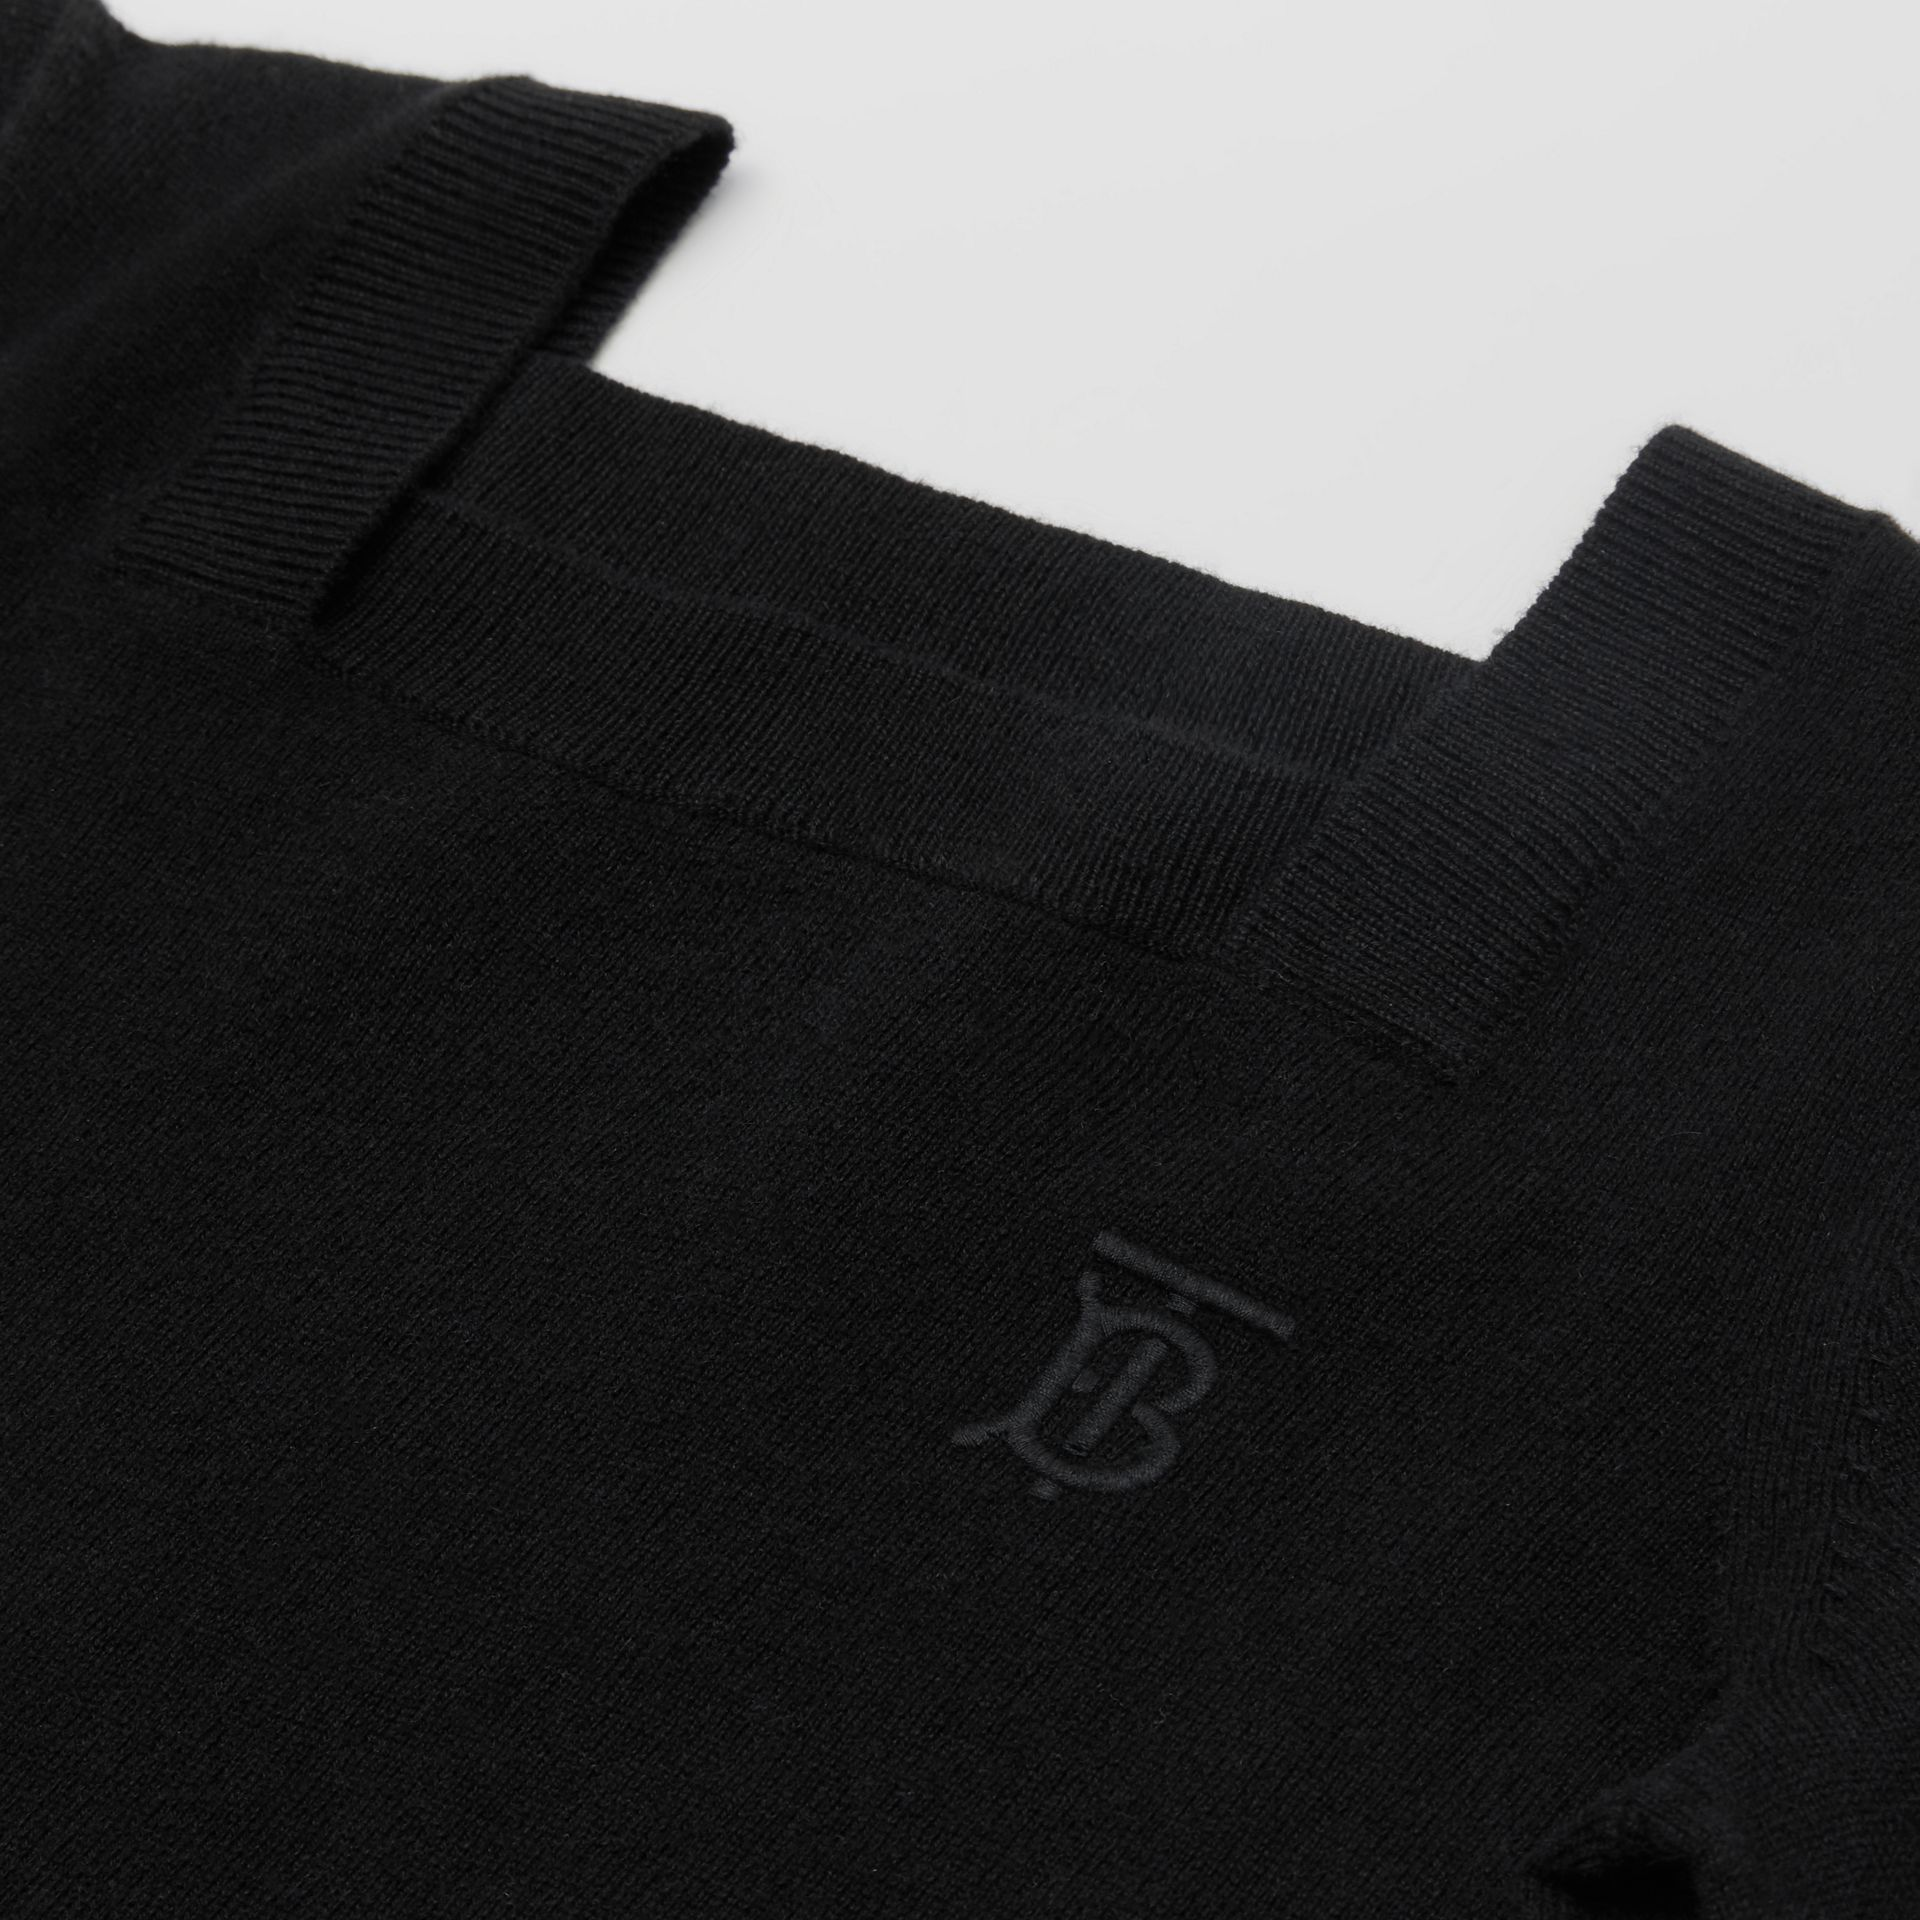 Monogram Motif Cashmere Sweater Dress in Black | Burberry United States - gallery image 1